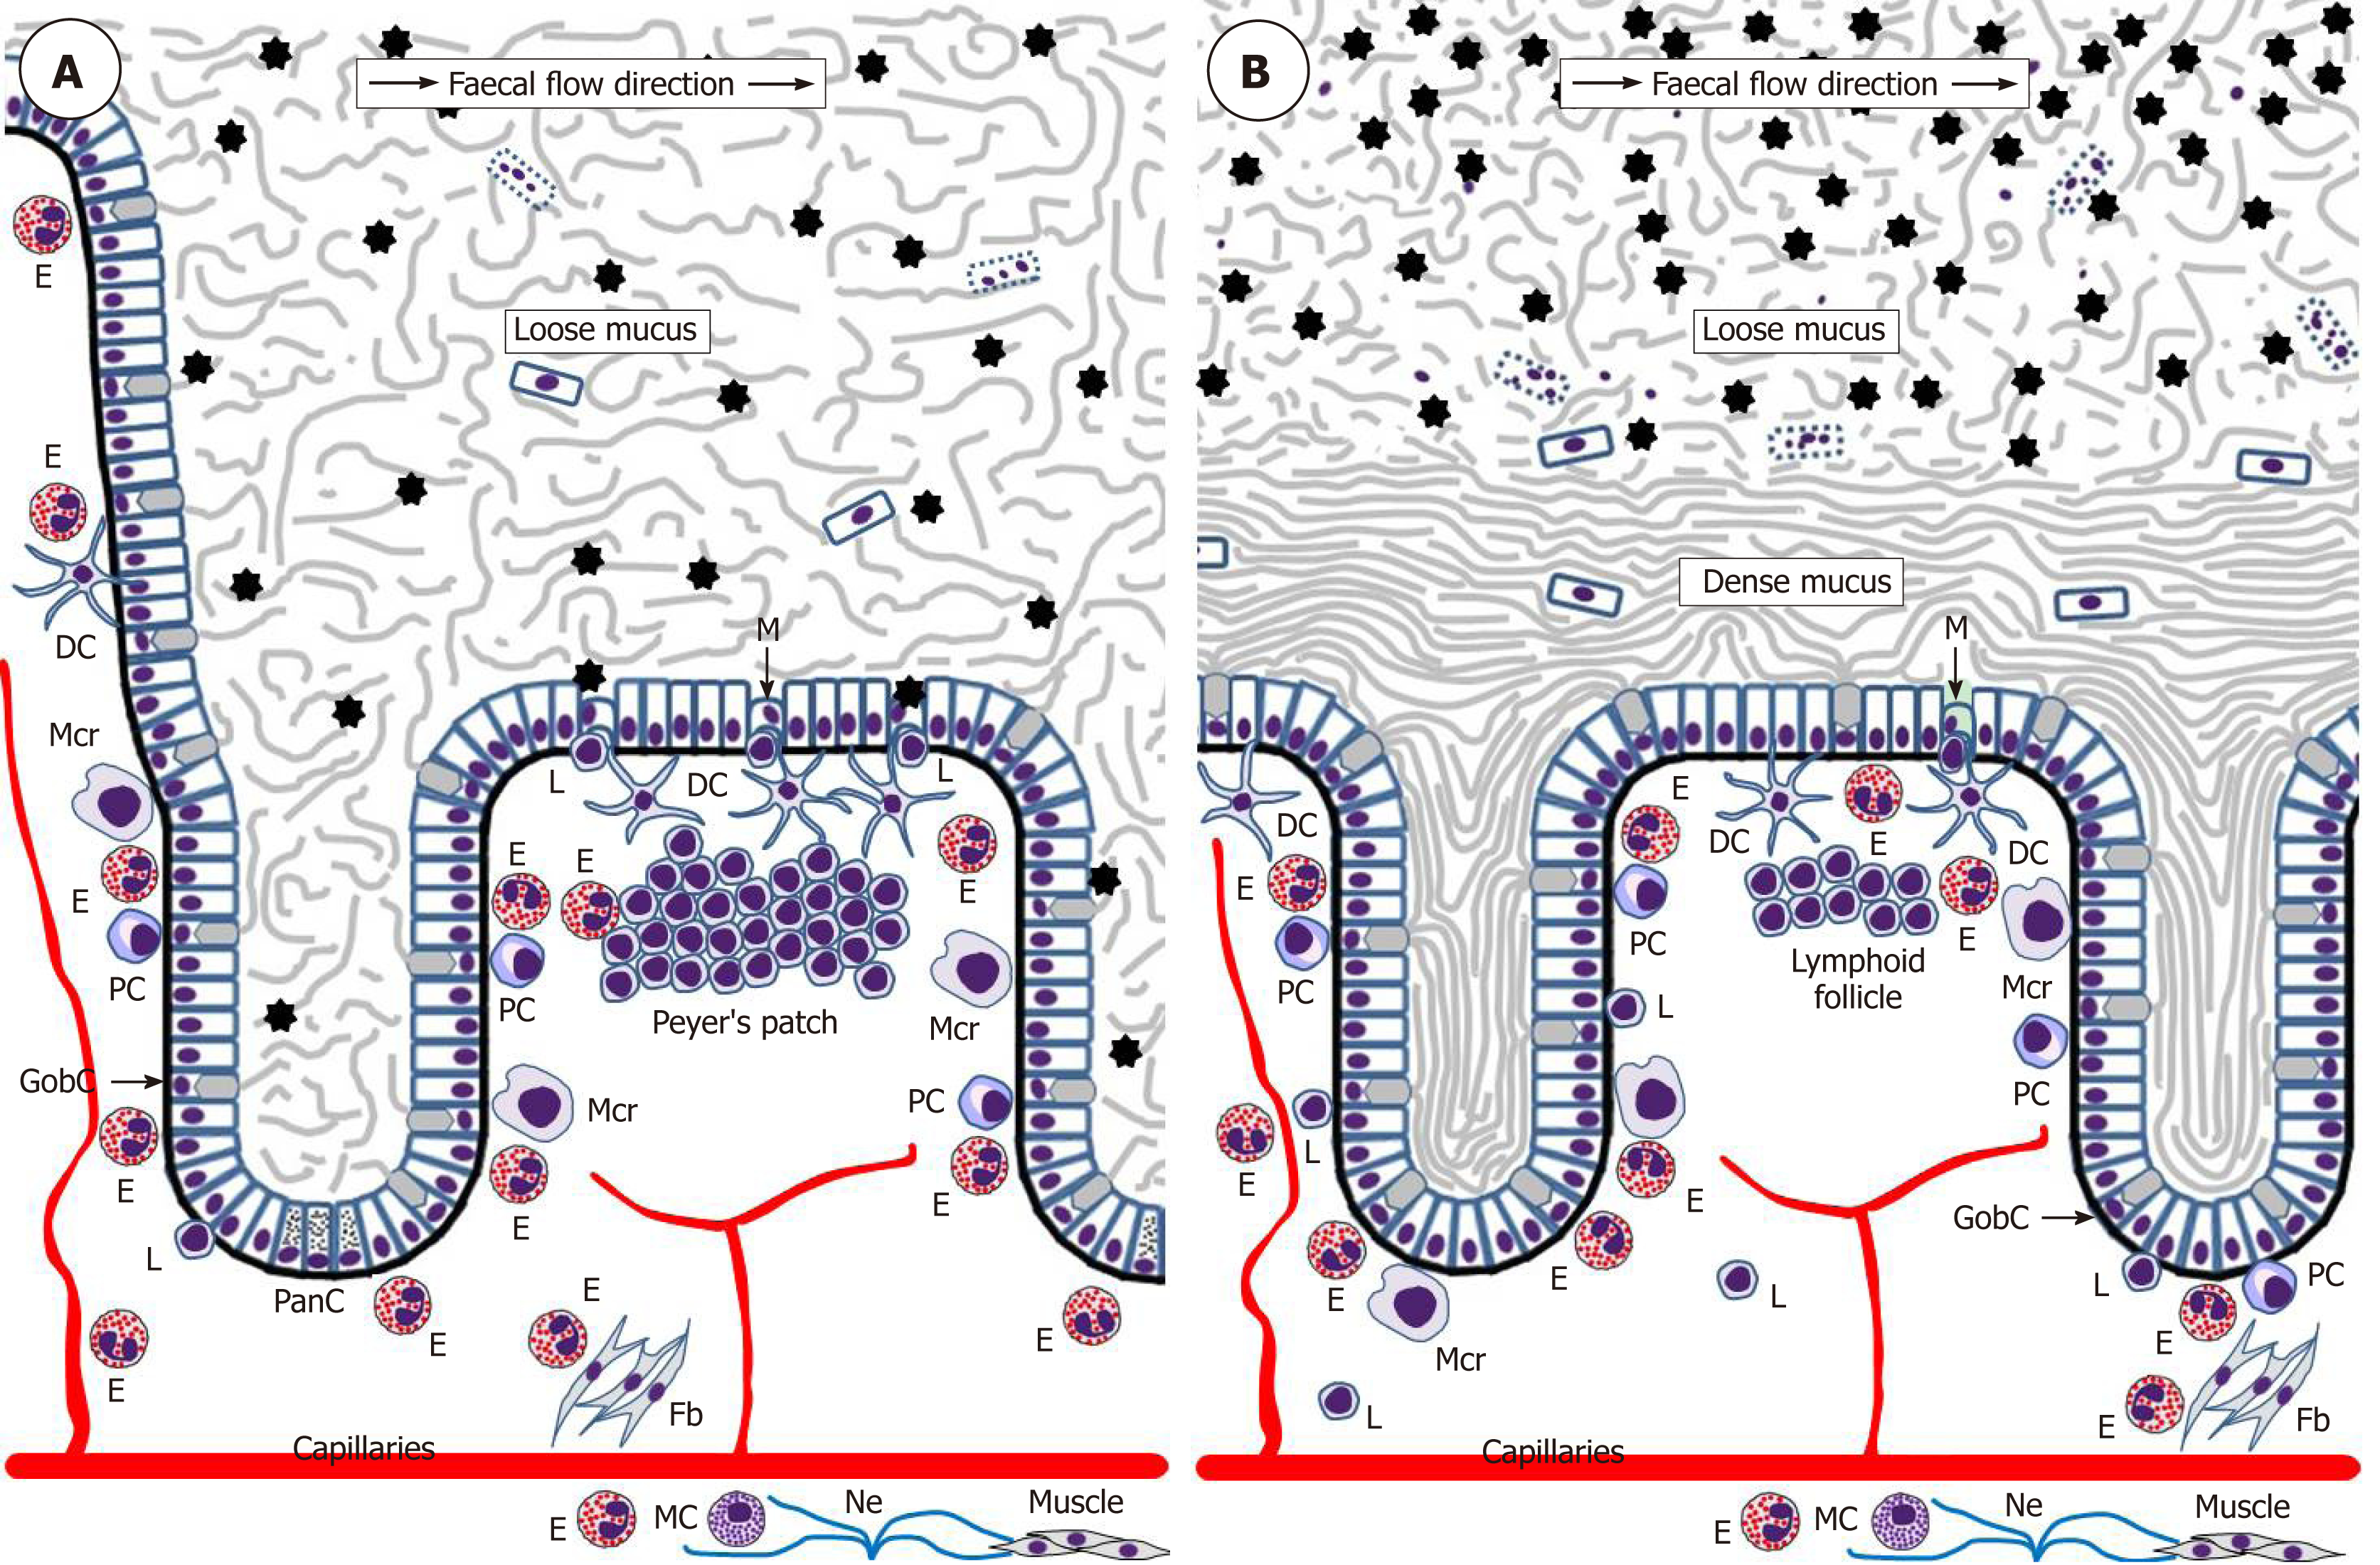 Eosinophils in the gastrointestinal tract and their role in